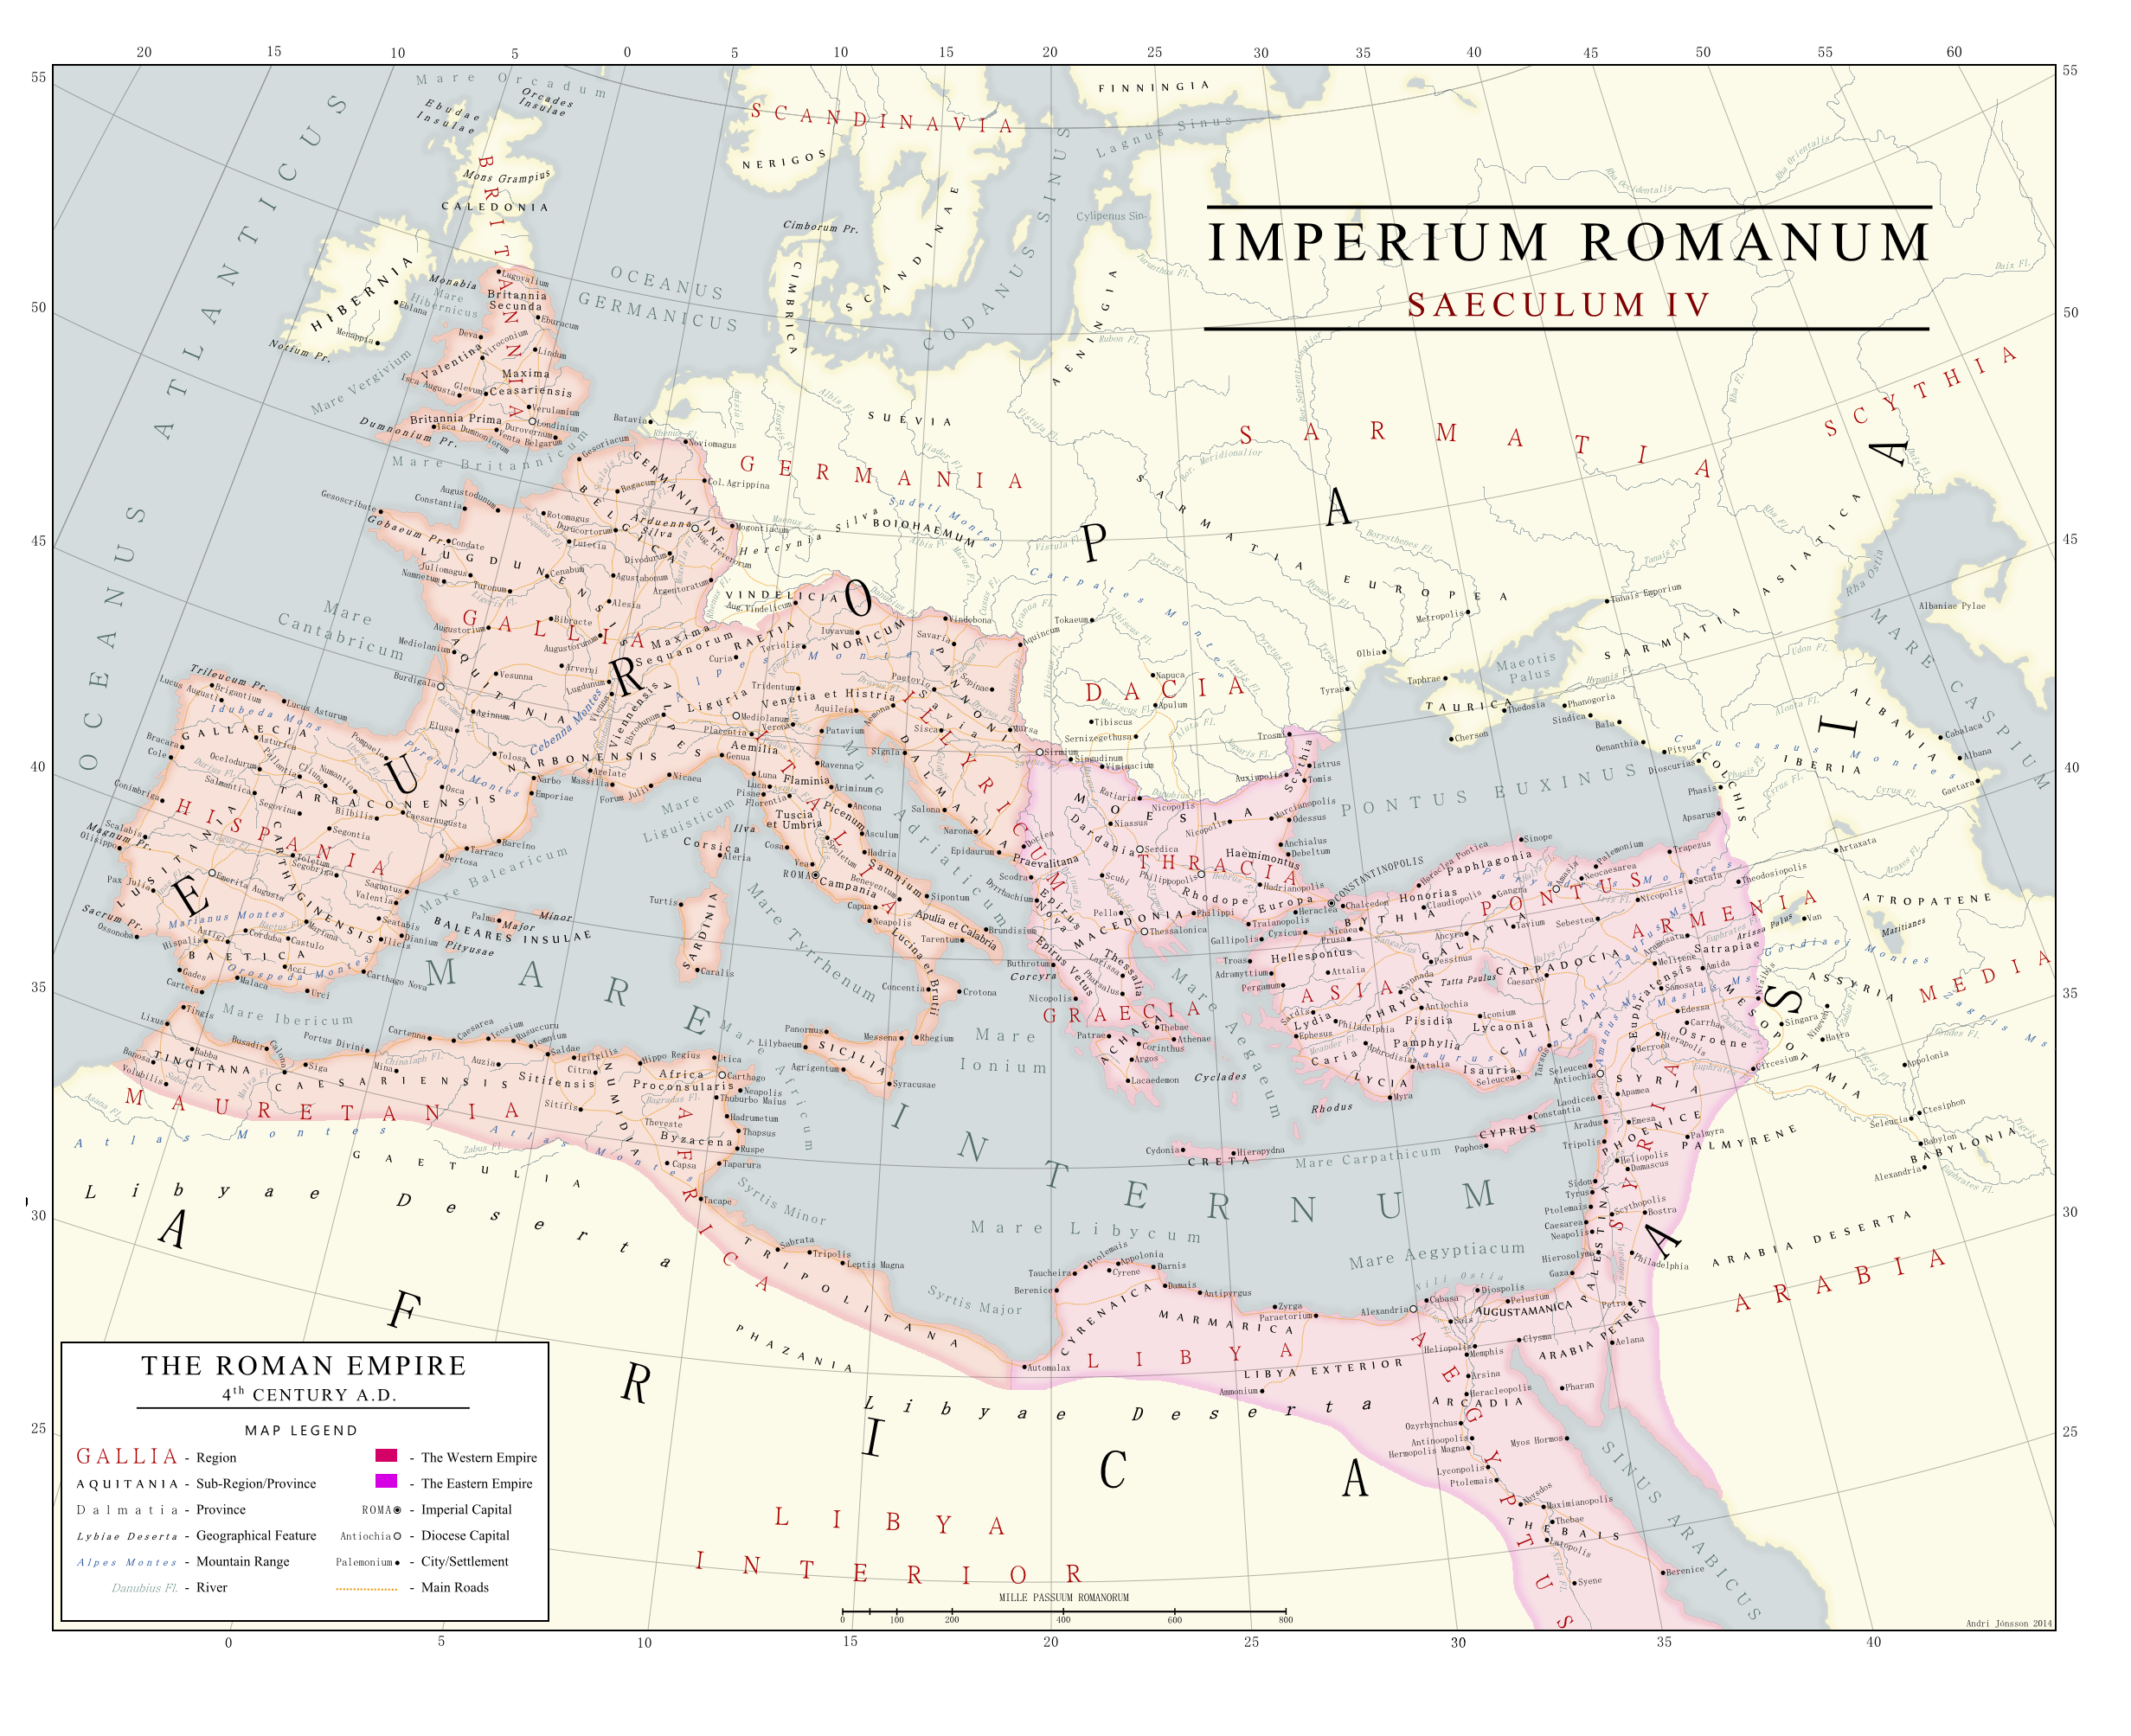 a comparison of the court system of the roman empire and the one of today What are the lasting legacies of the roman empire on modern governments one obvious influence of the roman empire is the idea of a republic, a concept of governing by elected legislative and executive systems.